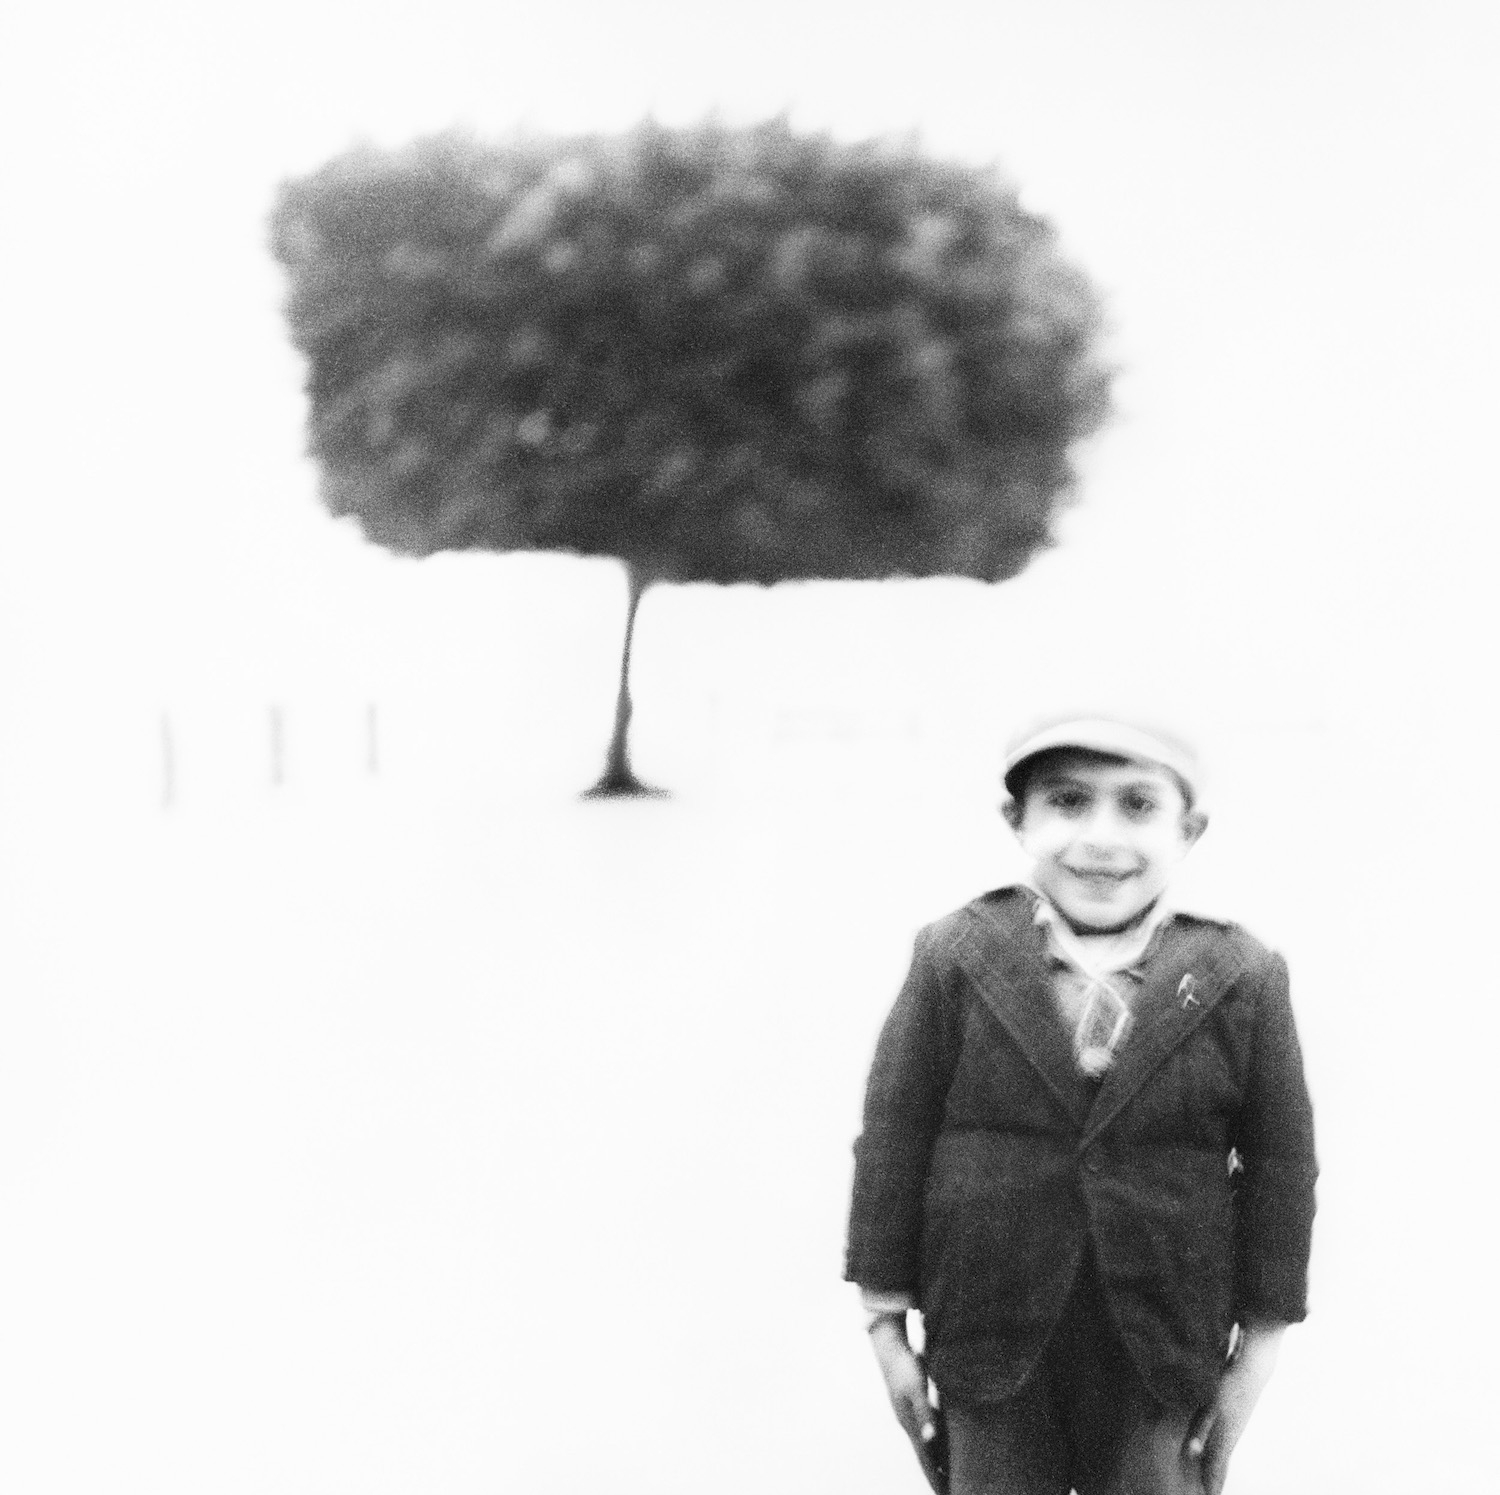 Italy #9 (Boy and Tree), Noto, Sicily, September 5, 1947